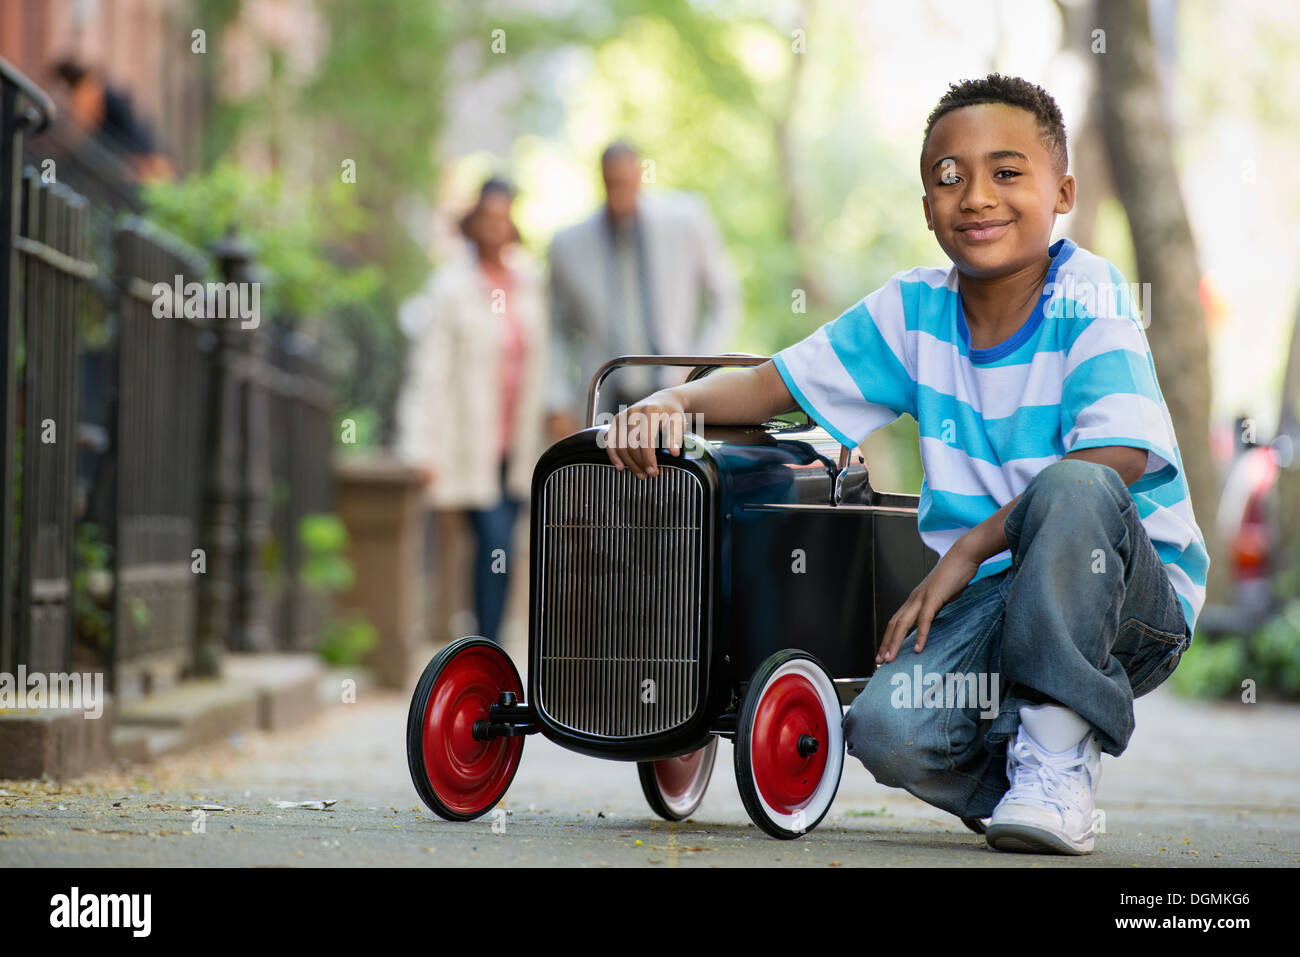 A young boy playing with a old fashioned toy car on wheels on a city street. A couple looking on. - Stock Image